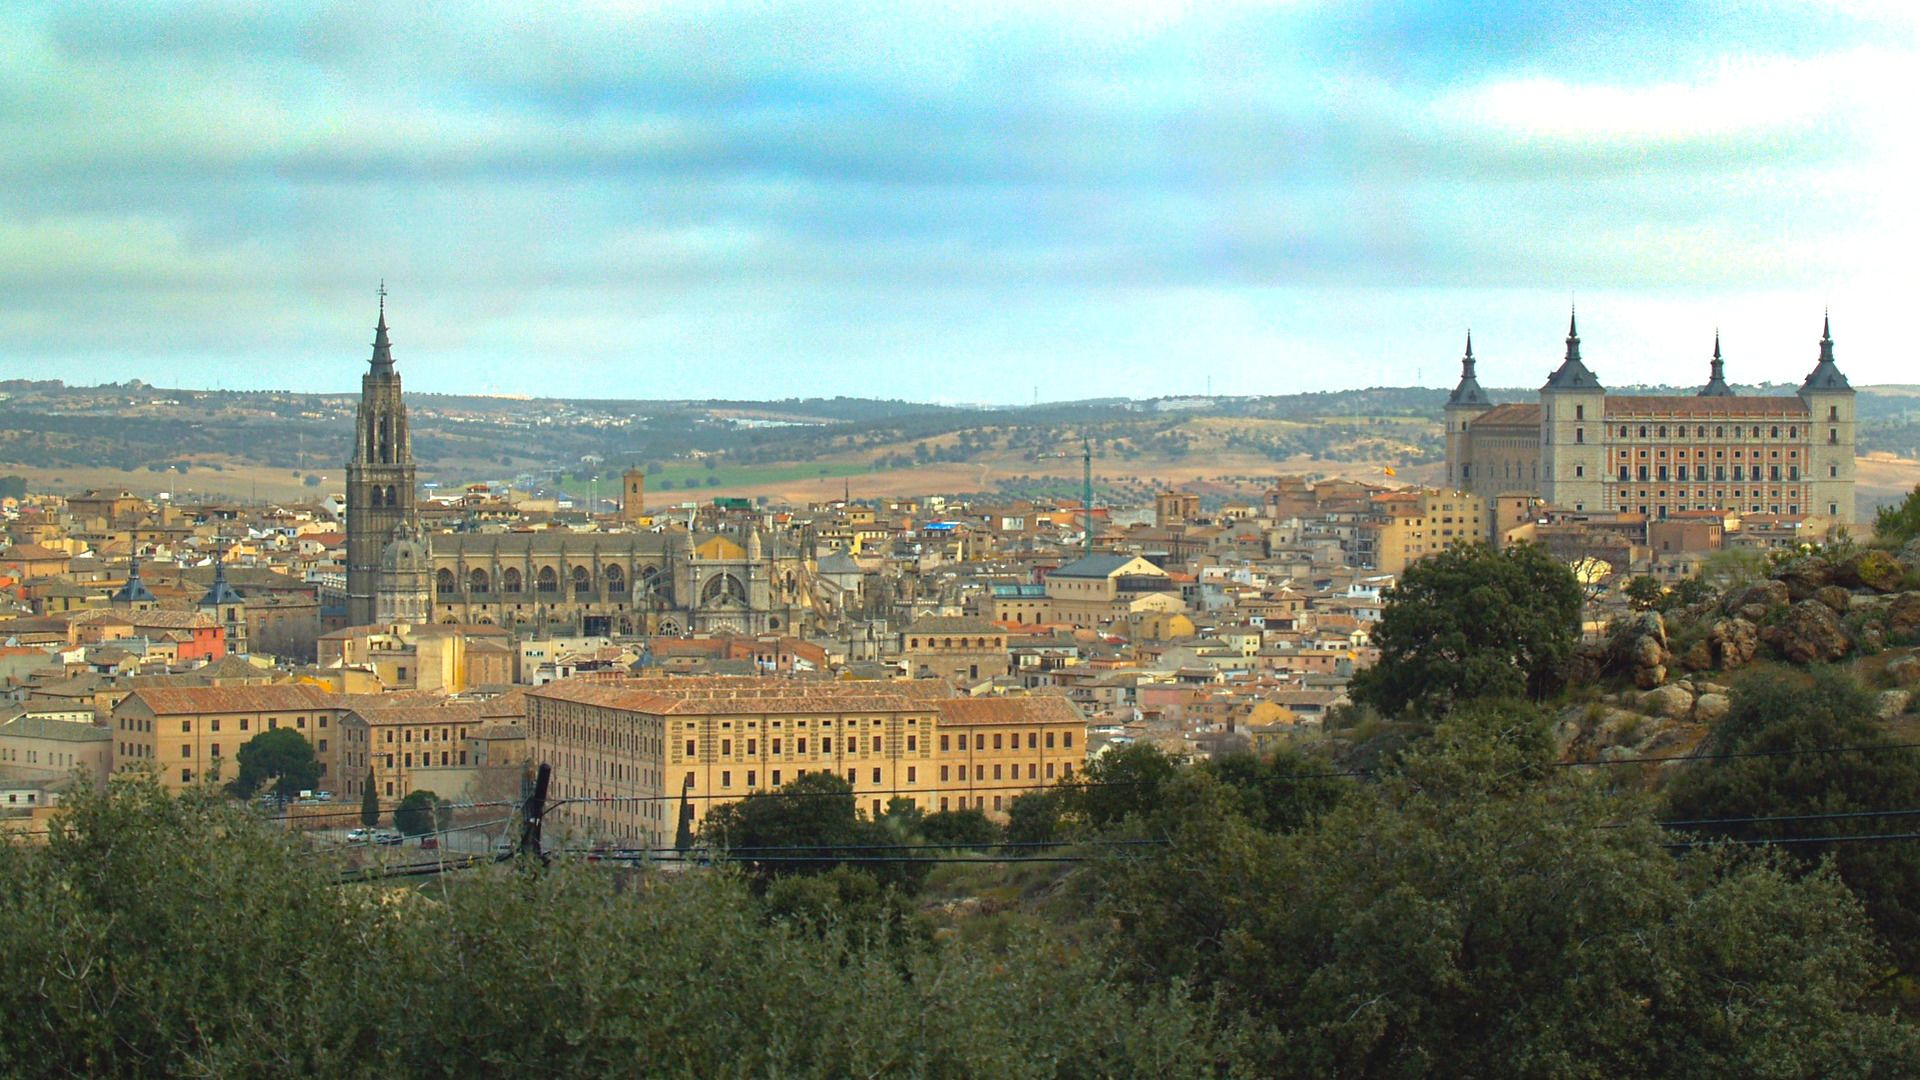 From Madrid: Full Toledo with Cathedral and 7 Monuments